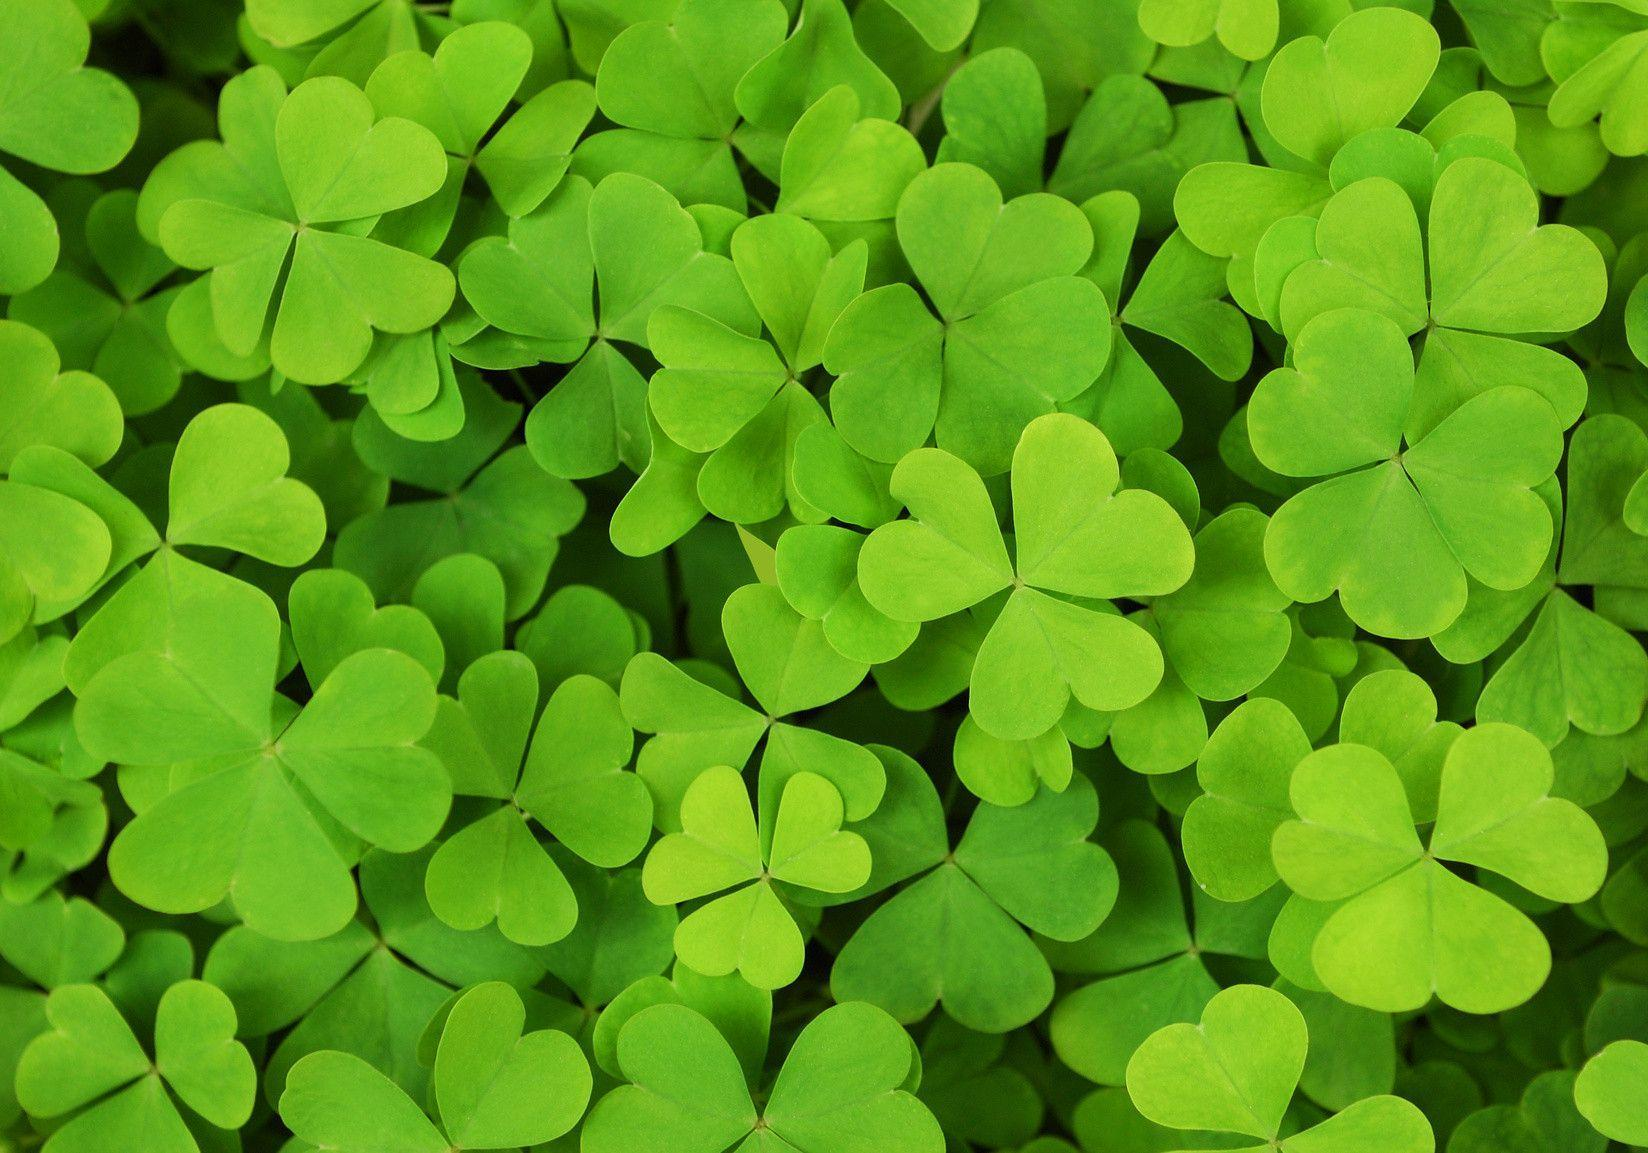 patricks day shamrock background - photo #29